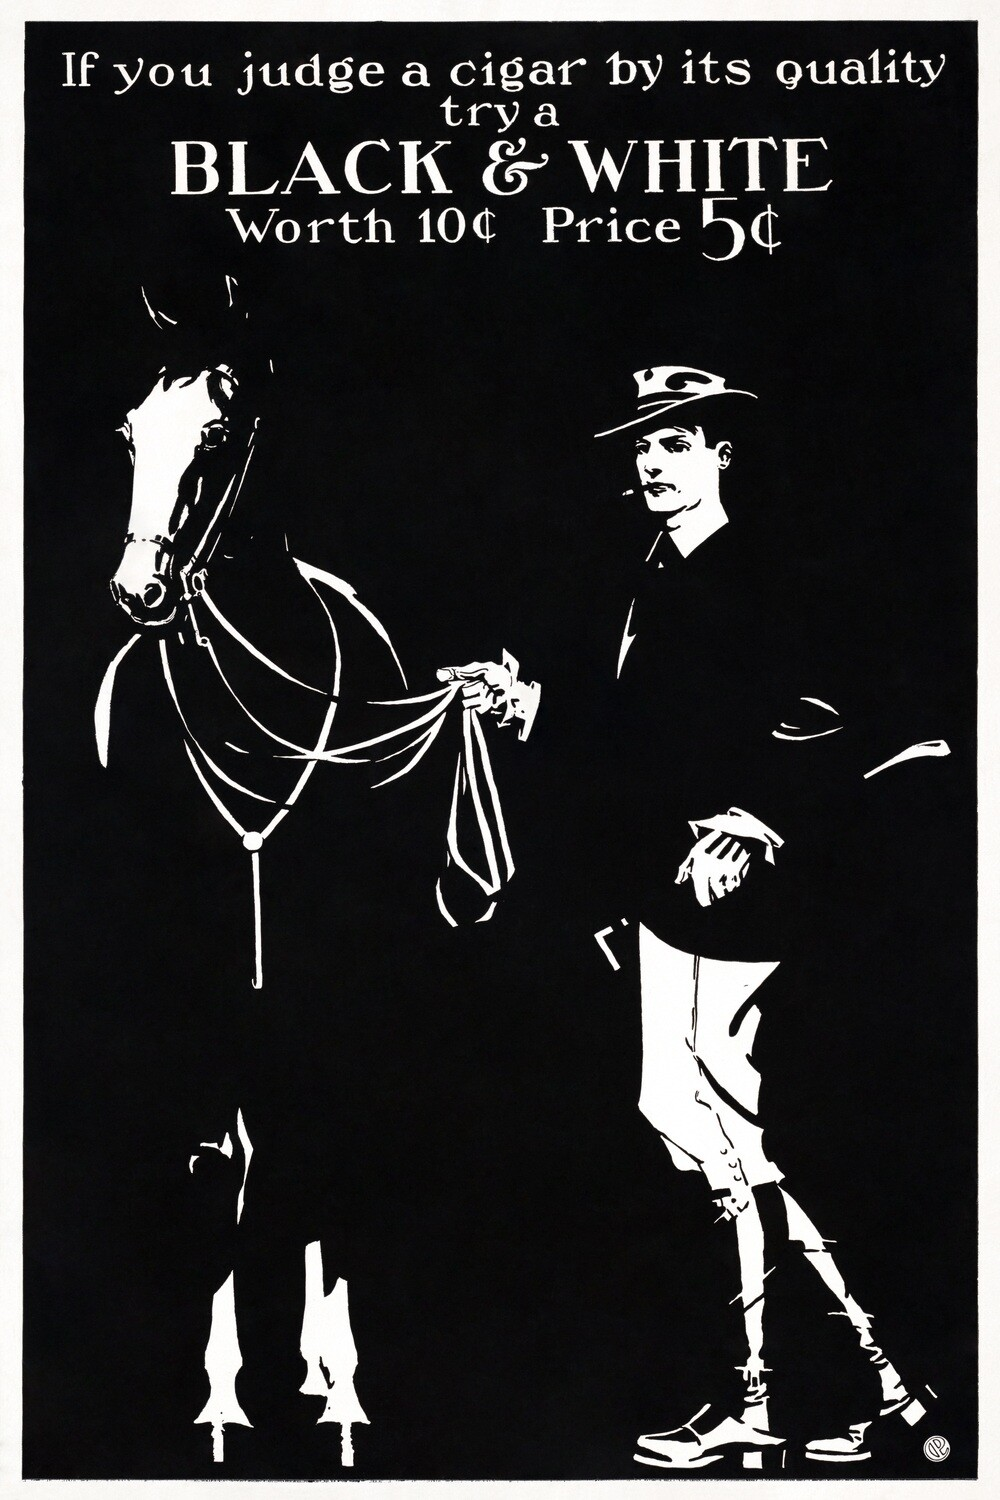 Edward Penfield   If you judge a cigar by its quality try a Black & White 1890-1900